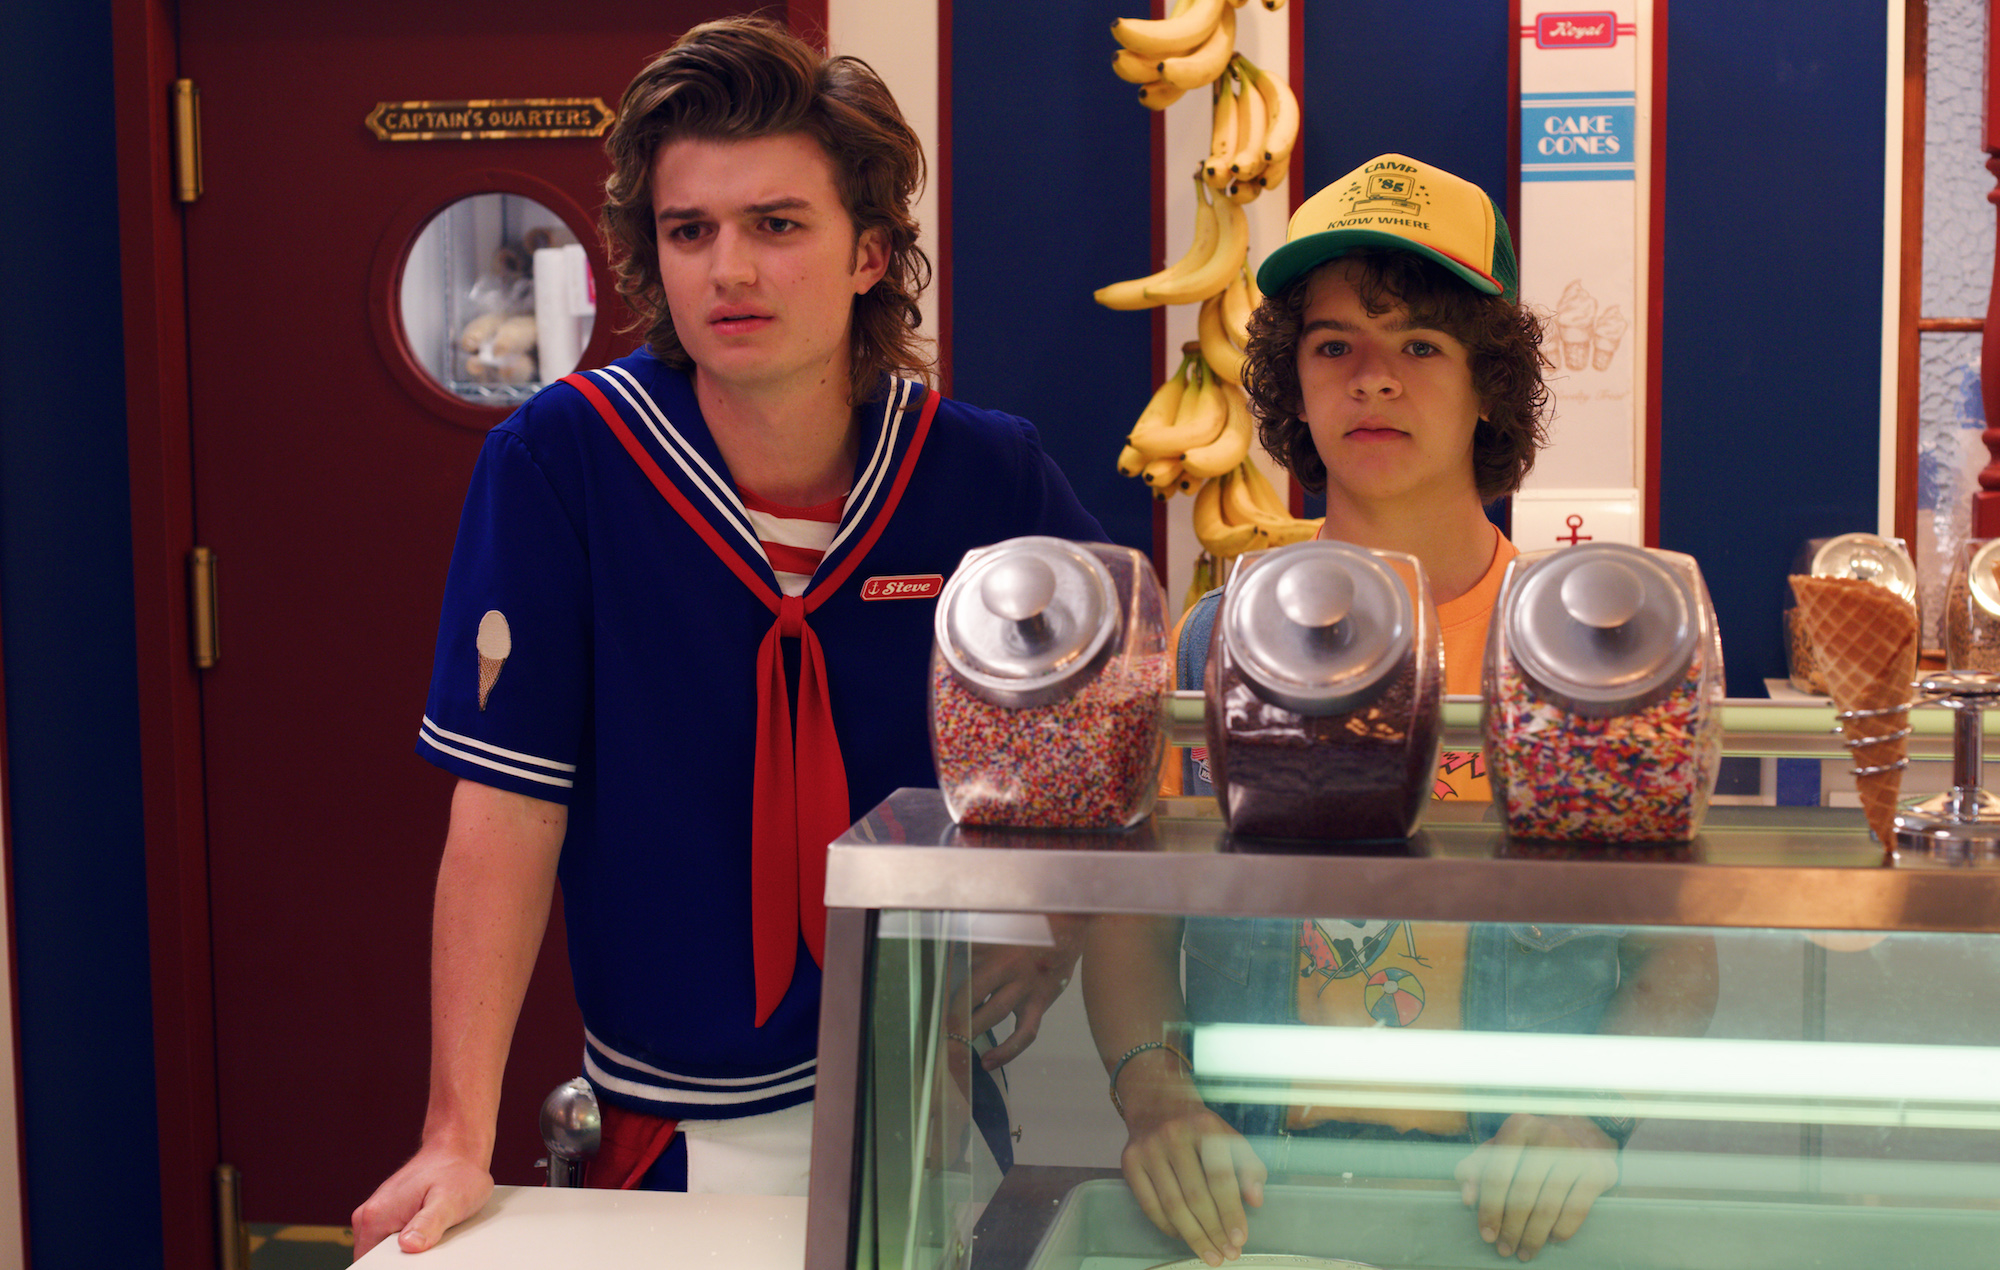 Stranger Things' season 4: trailers, cast, release date and